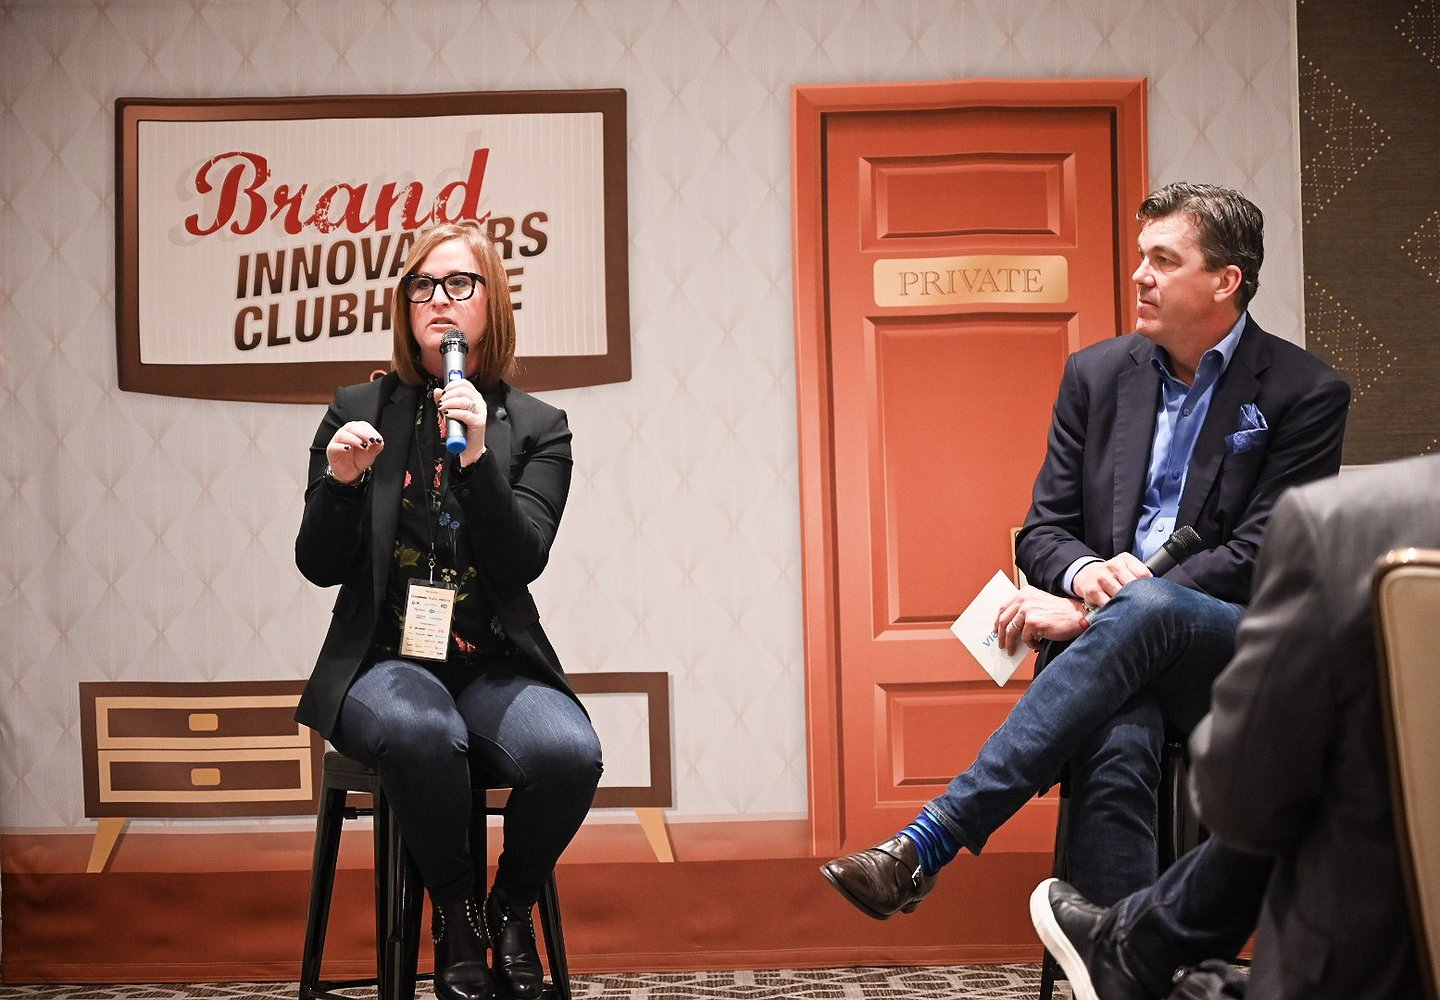 Brands and Media: The Changing Landscape